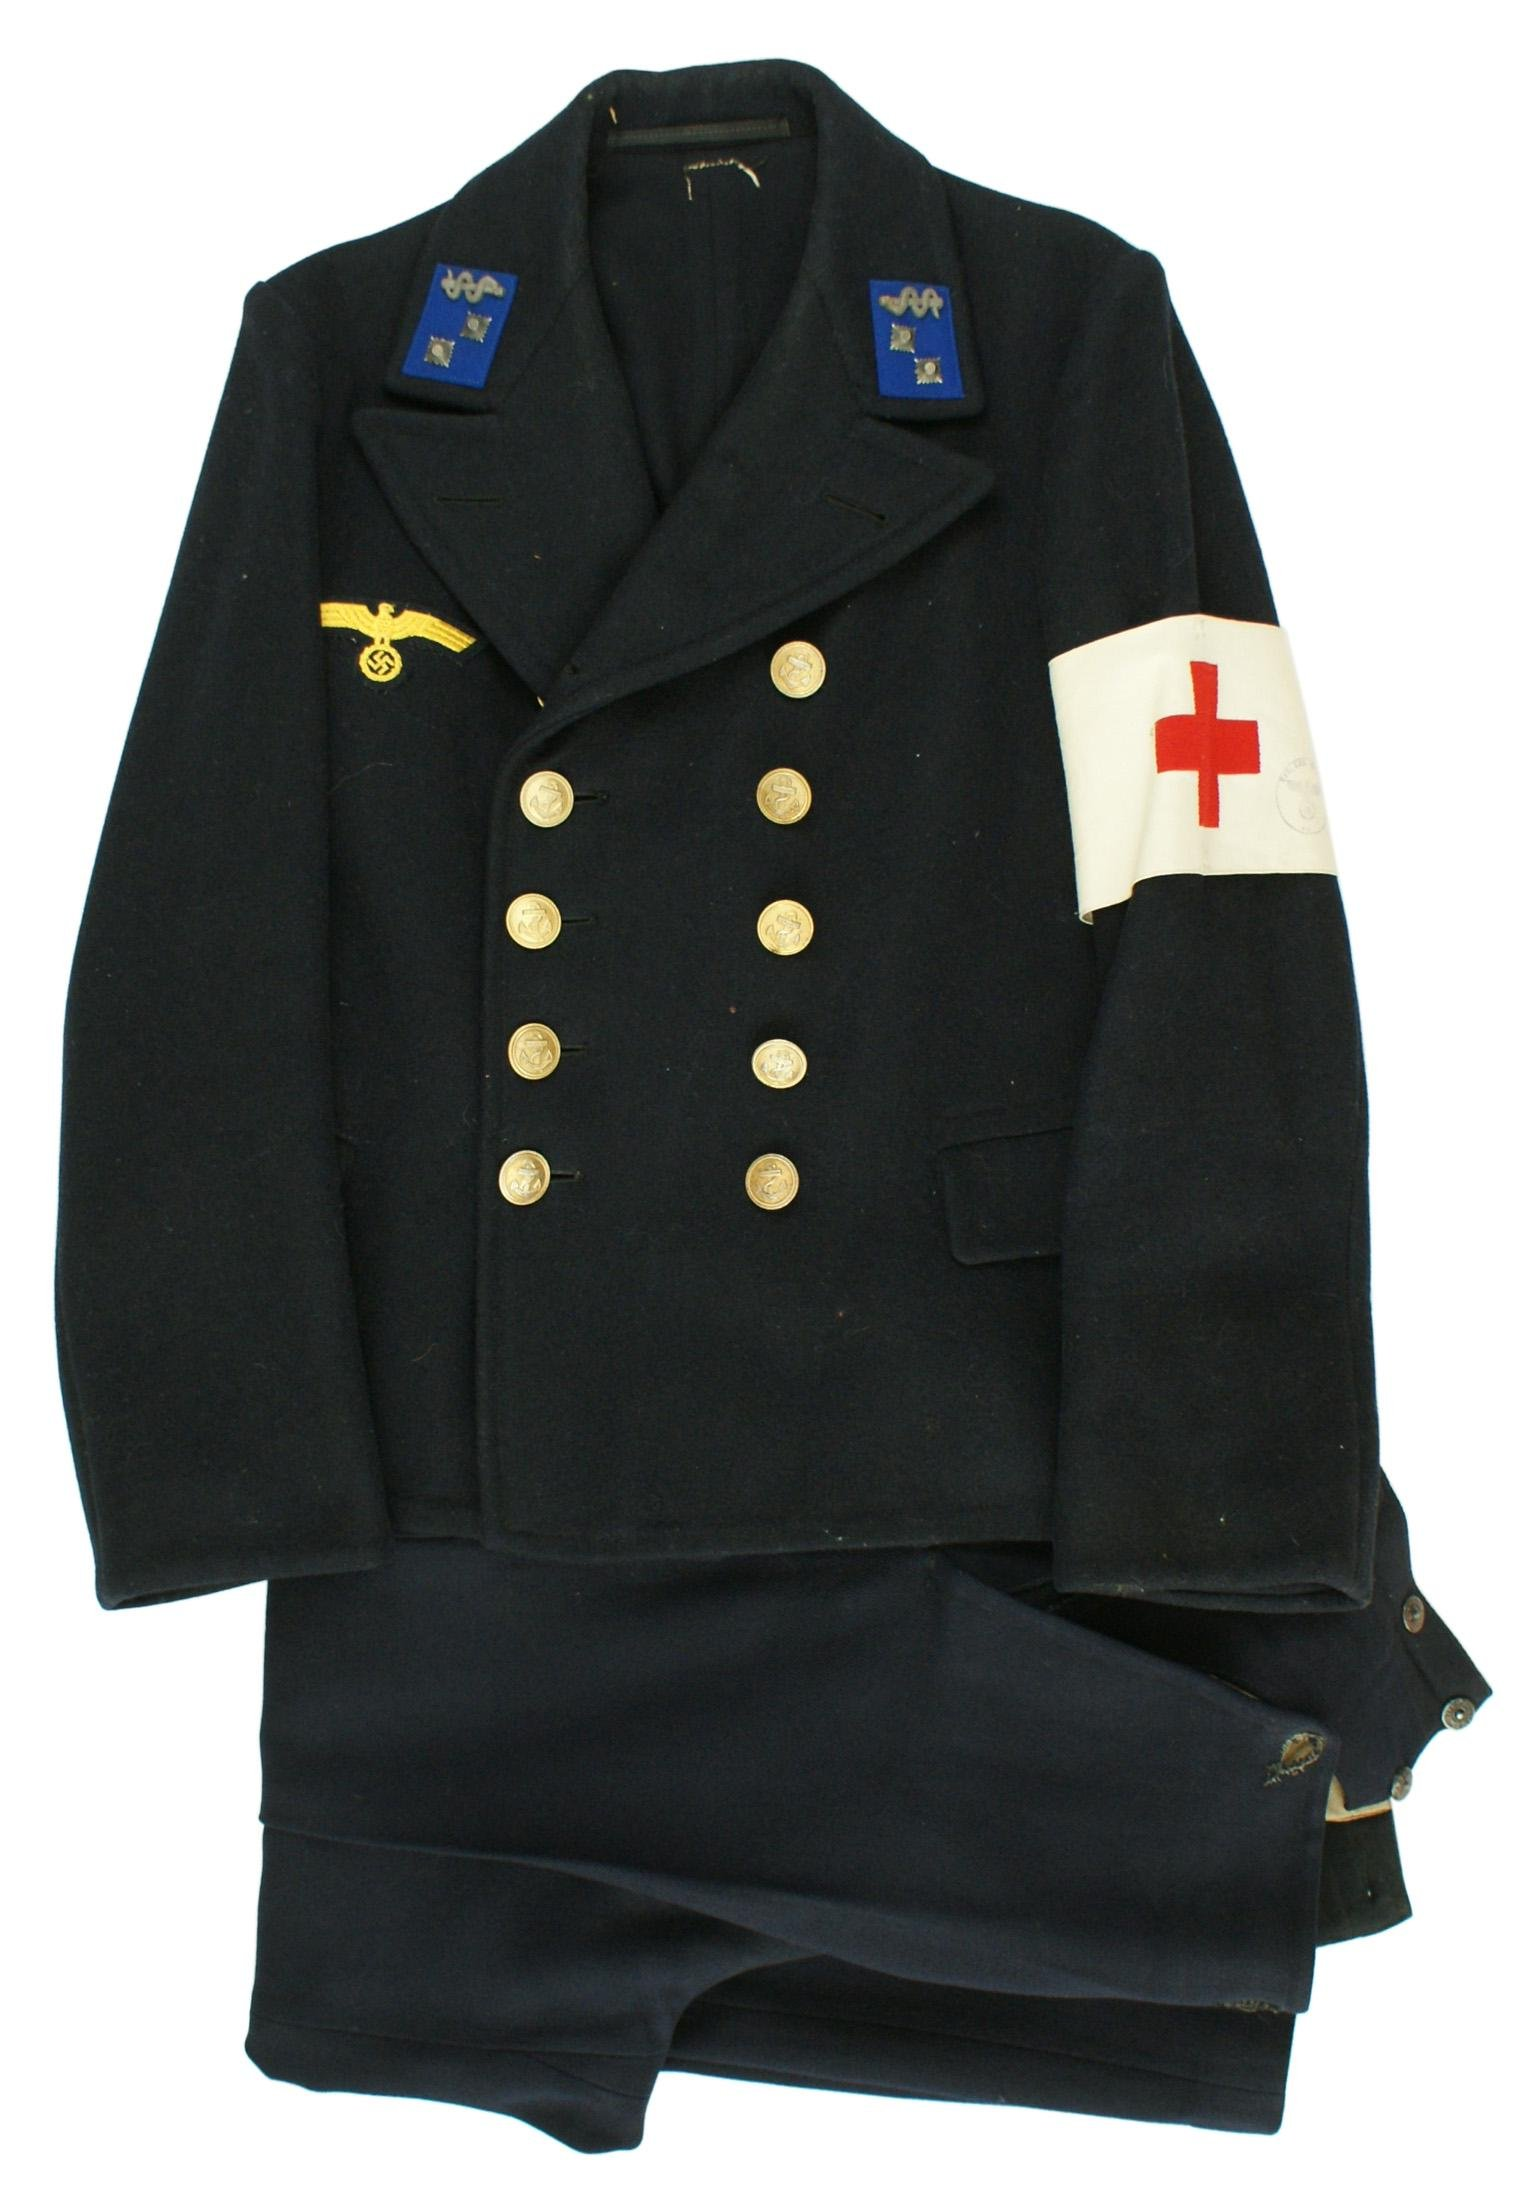 German Kriegsmarine WWII Medical uniform